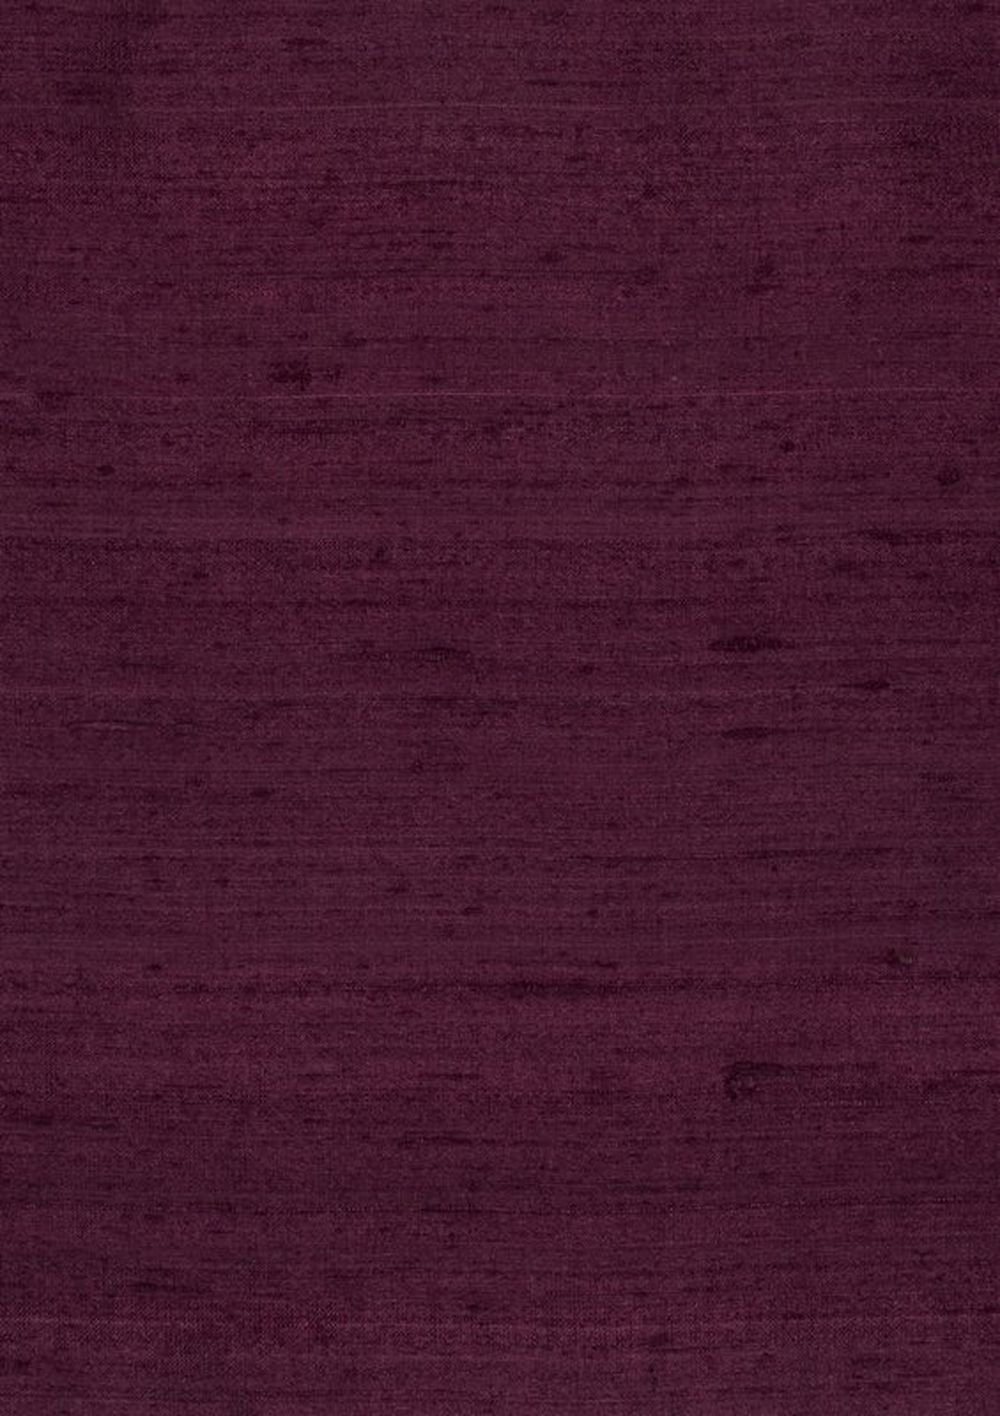 Photo of the fabric Luxury Raisin-201 swatch by James Dunlop. Use for Curtains. Style of Plain